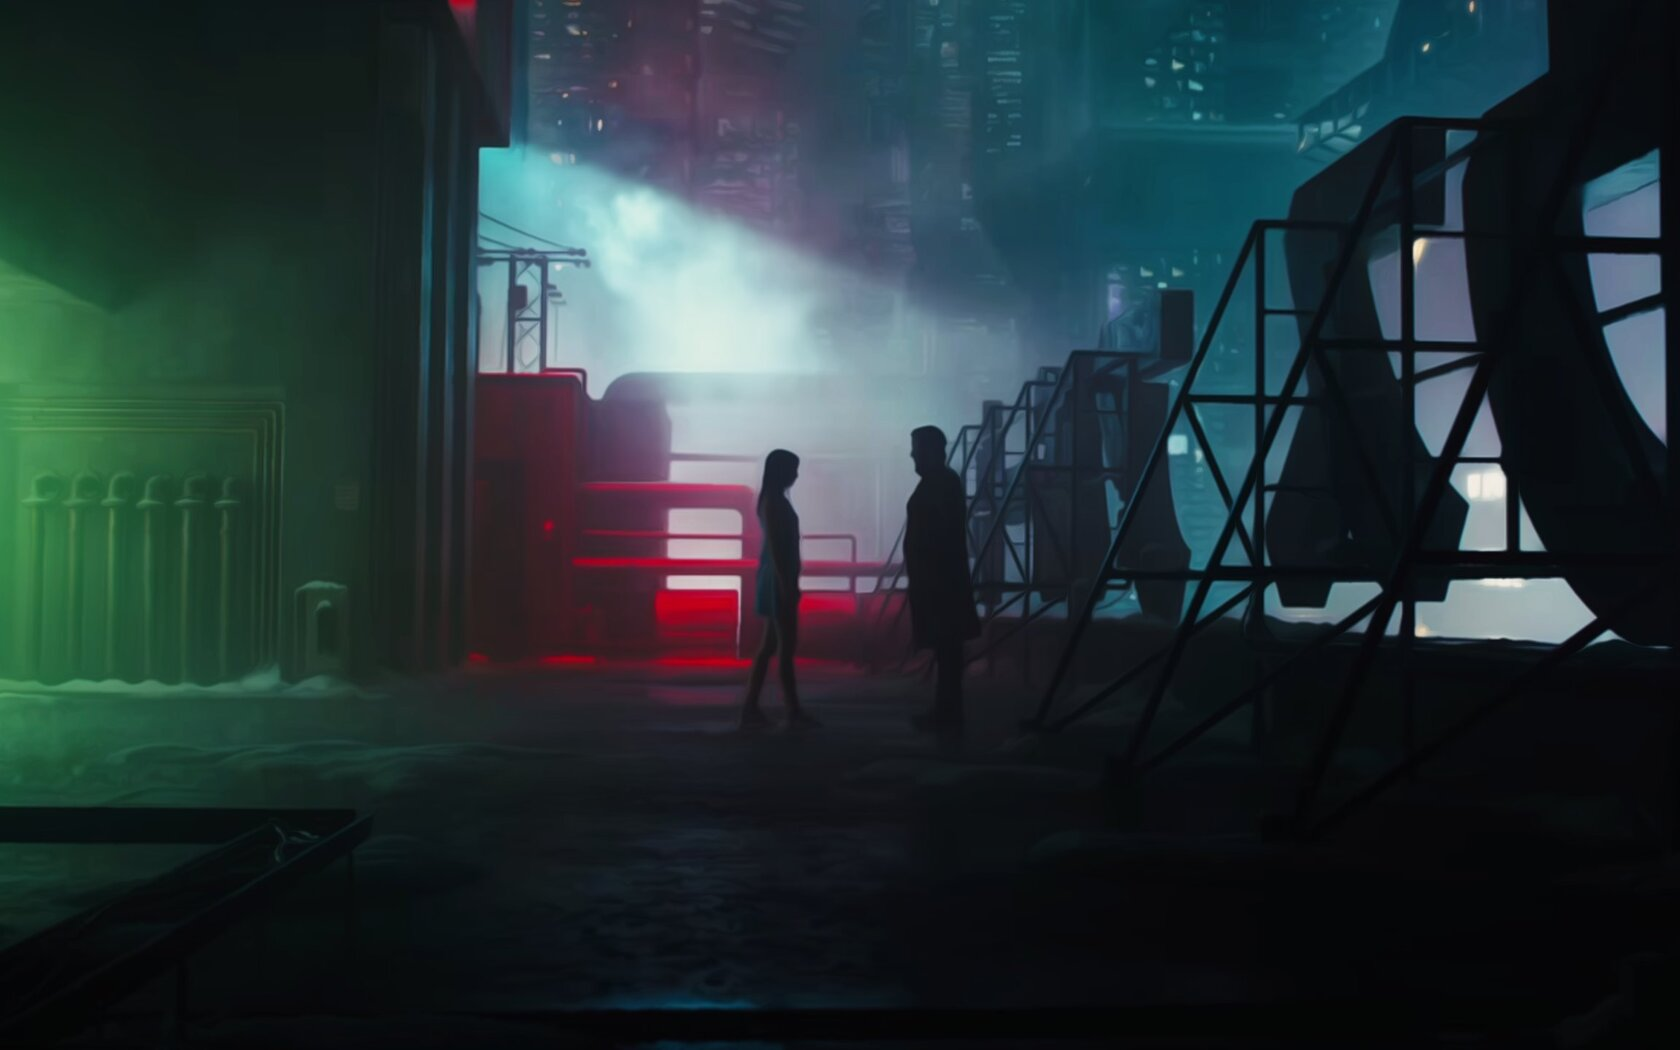 blade runner anaylisation We will write a cheap essay sample on blade runner: humanity at its edge specifically for you for only $1290/page blade runner anaylisation blade runner.